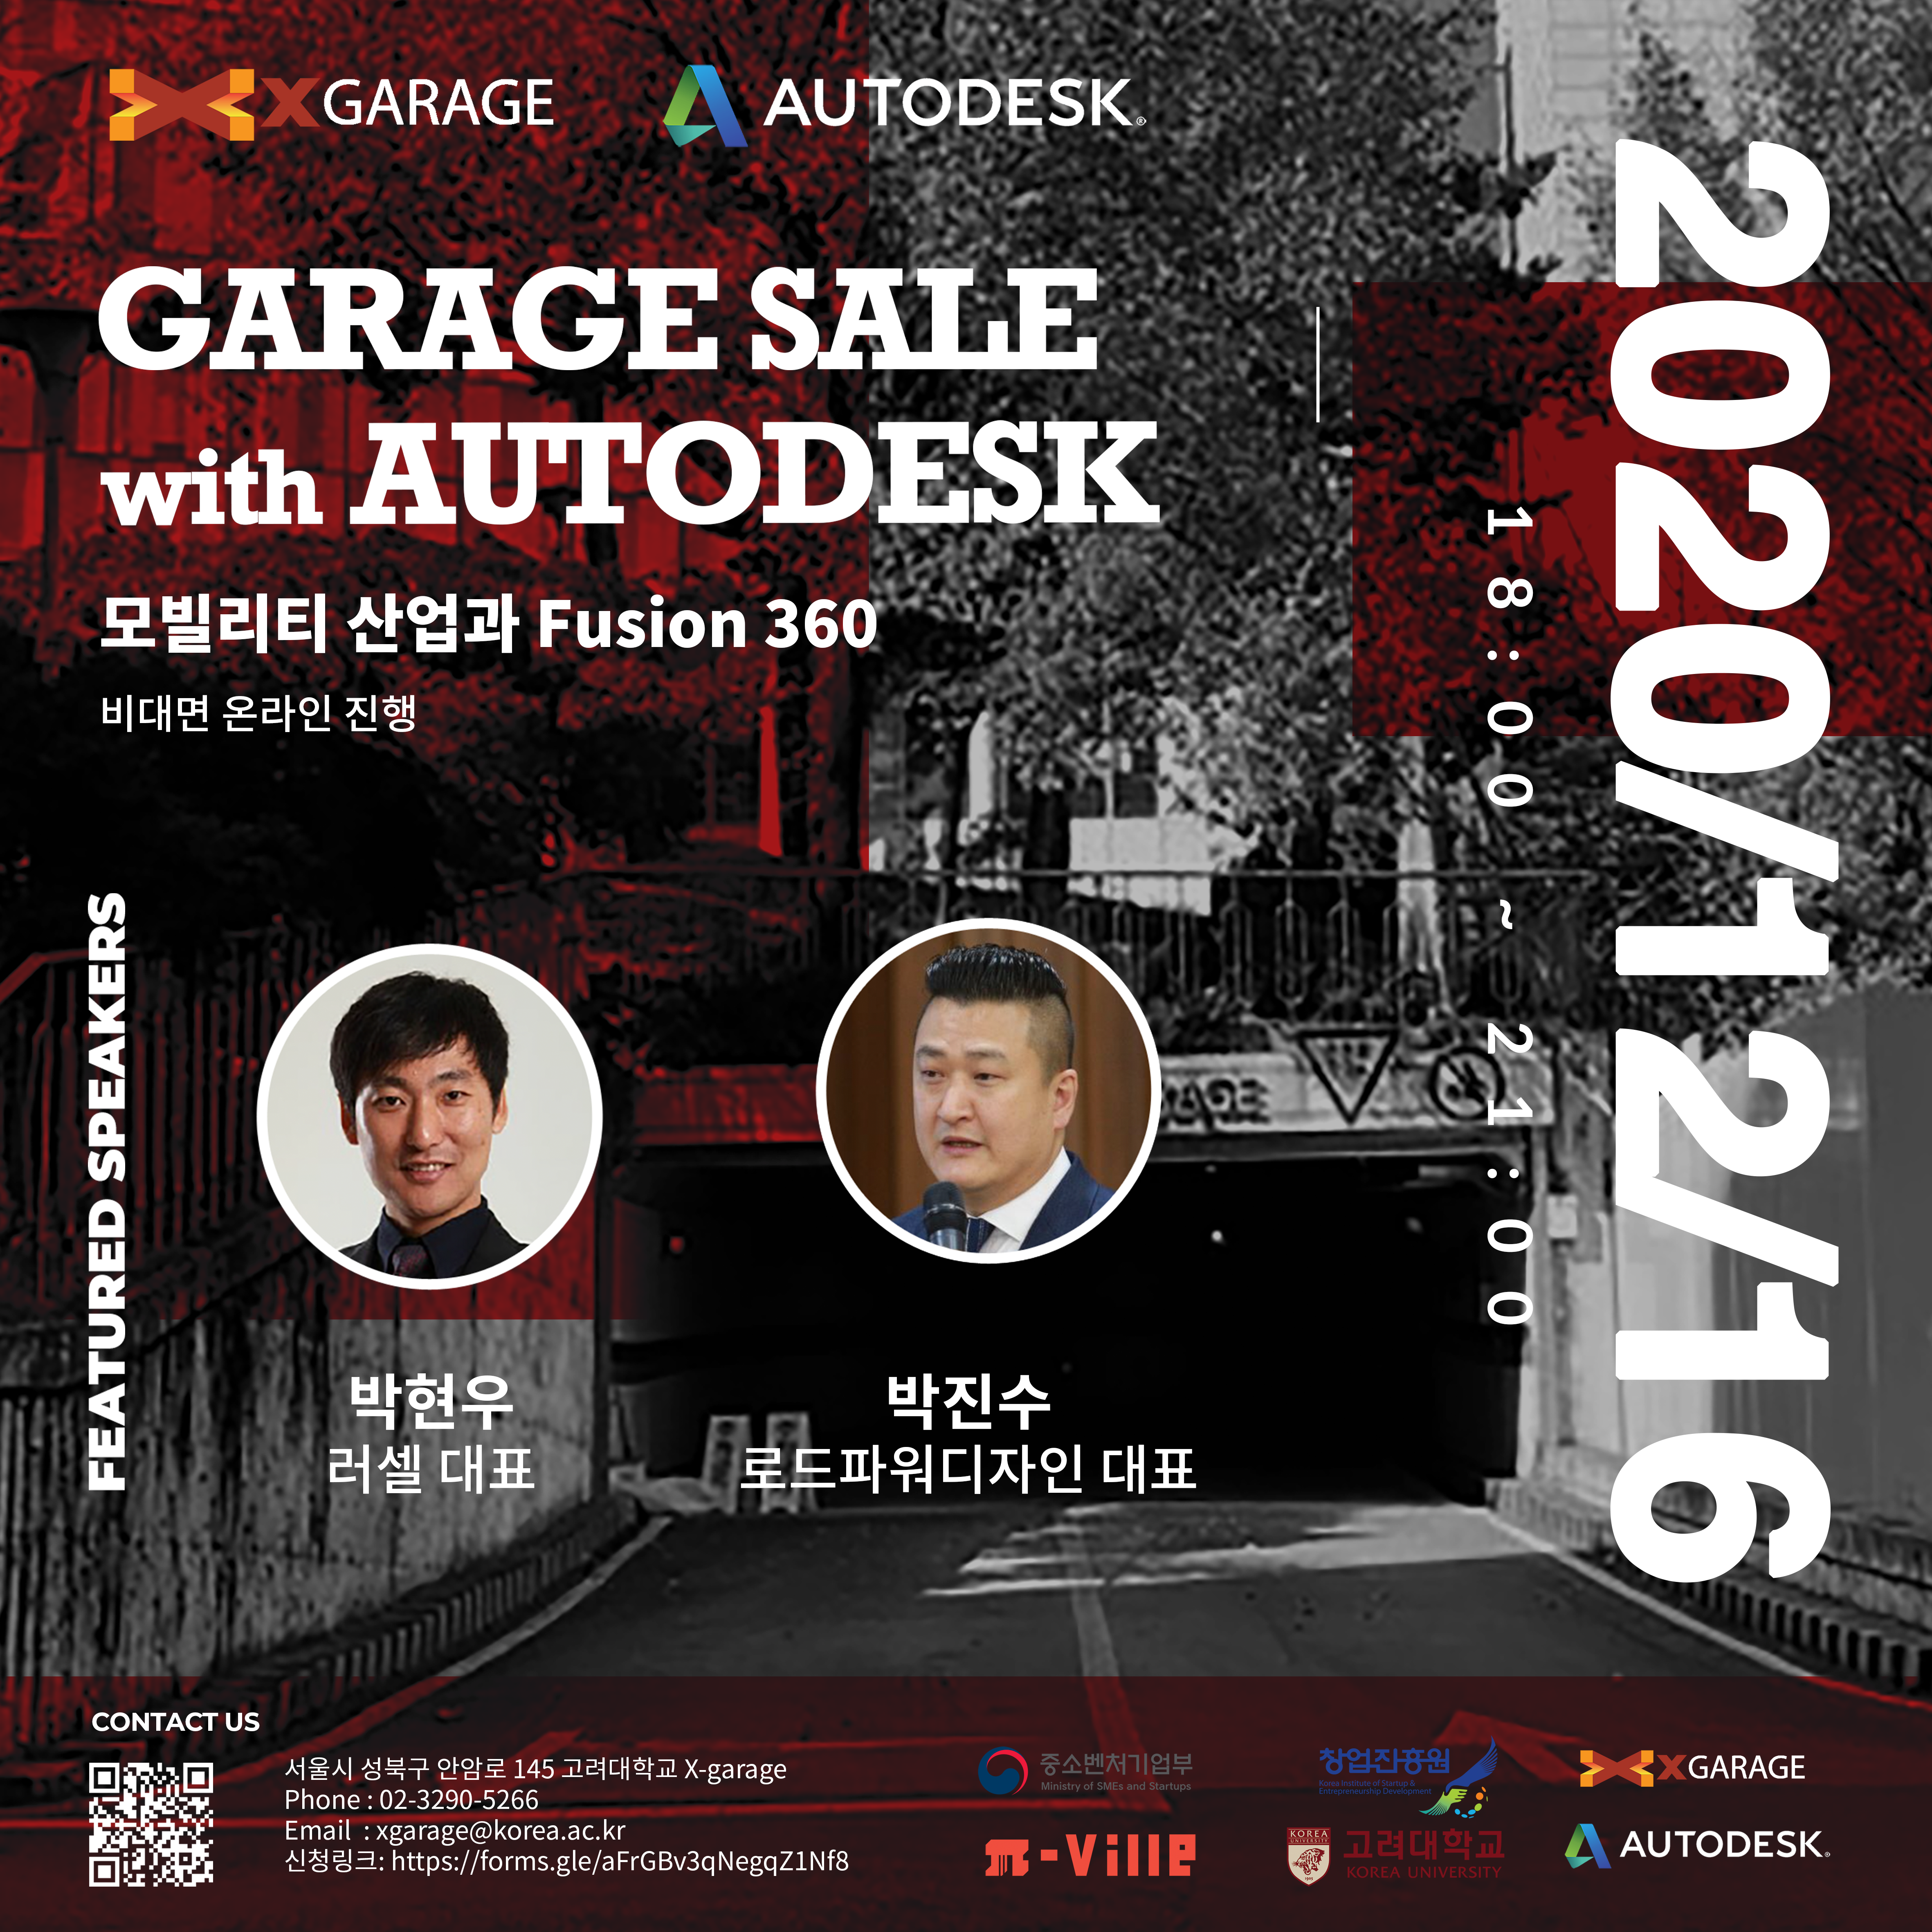 GARAGE SALE with Autodesk - 모빌리티 산업과 Fusion 360